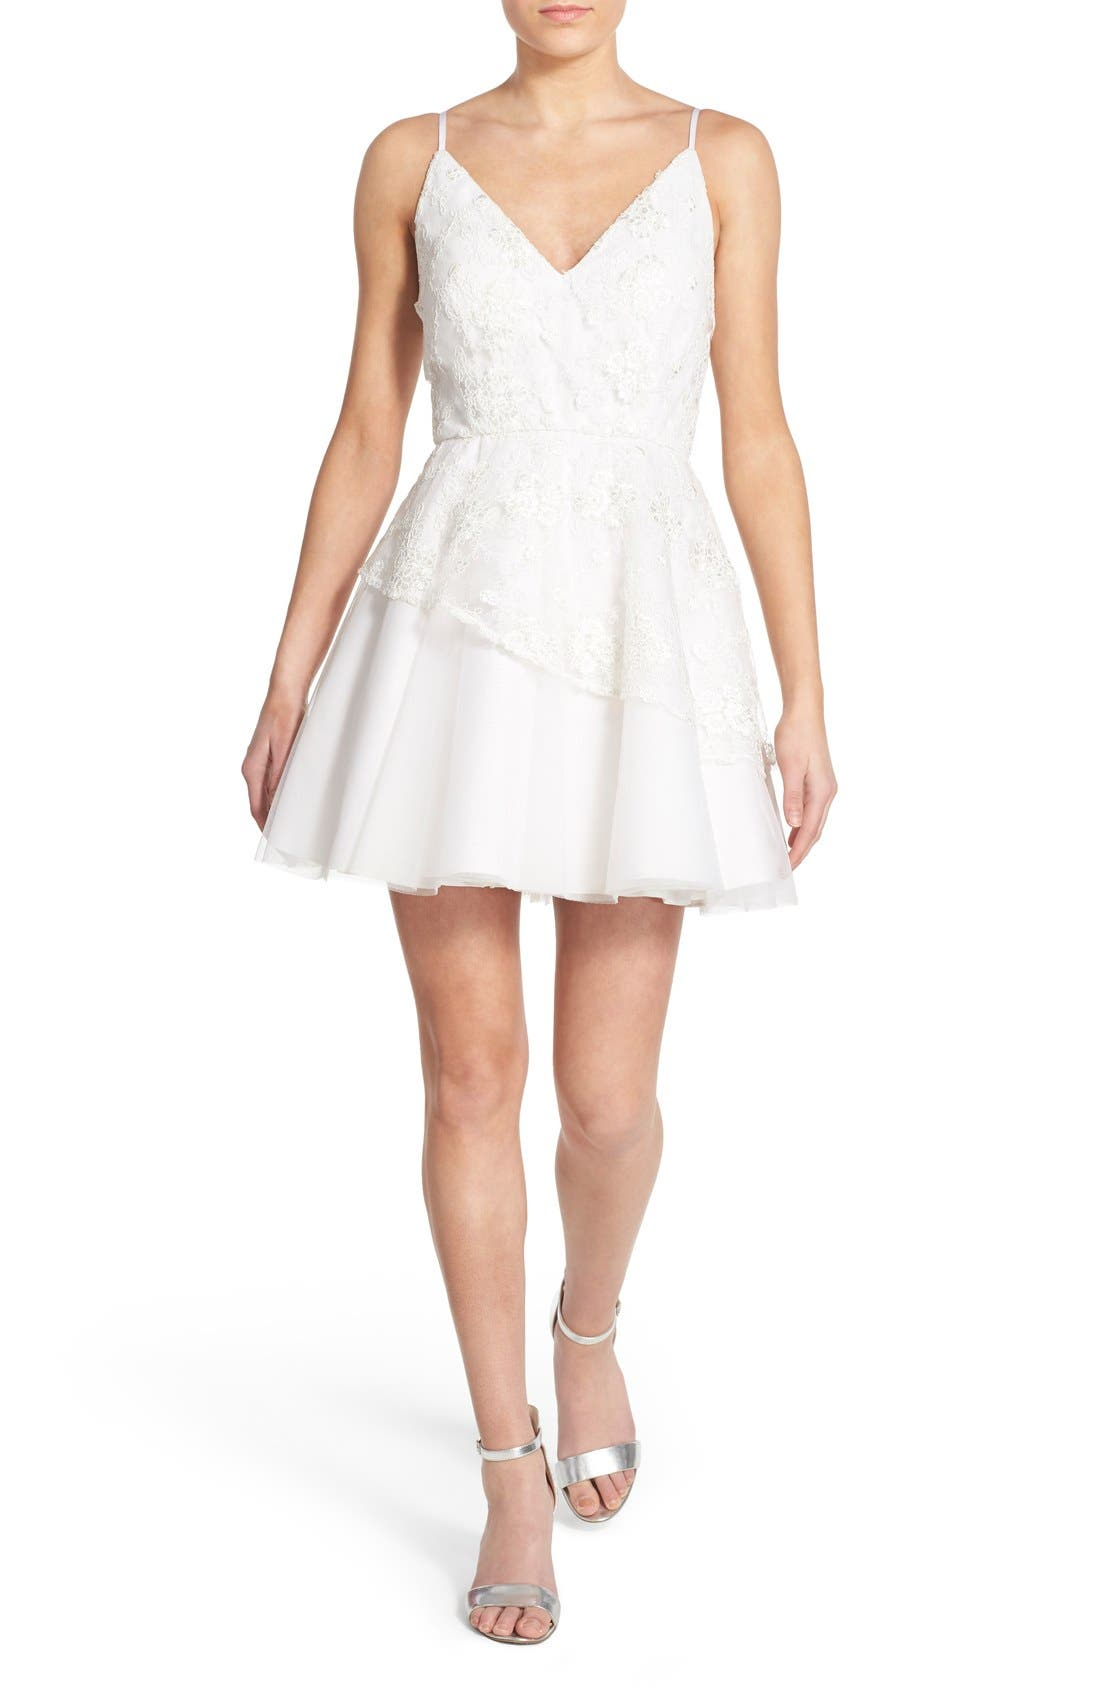 Alternate Image 1 Selected - Dear Moon Lace Skater Dress